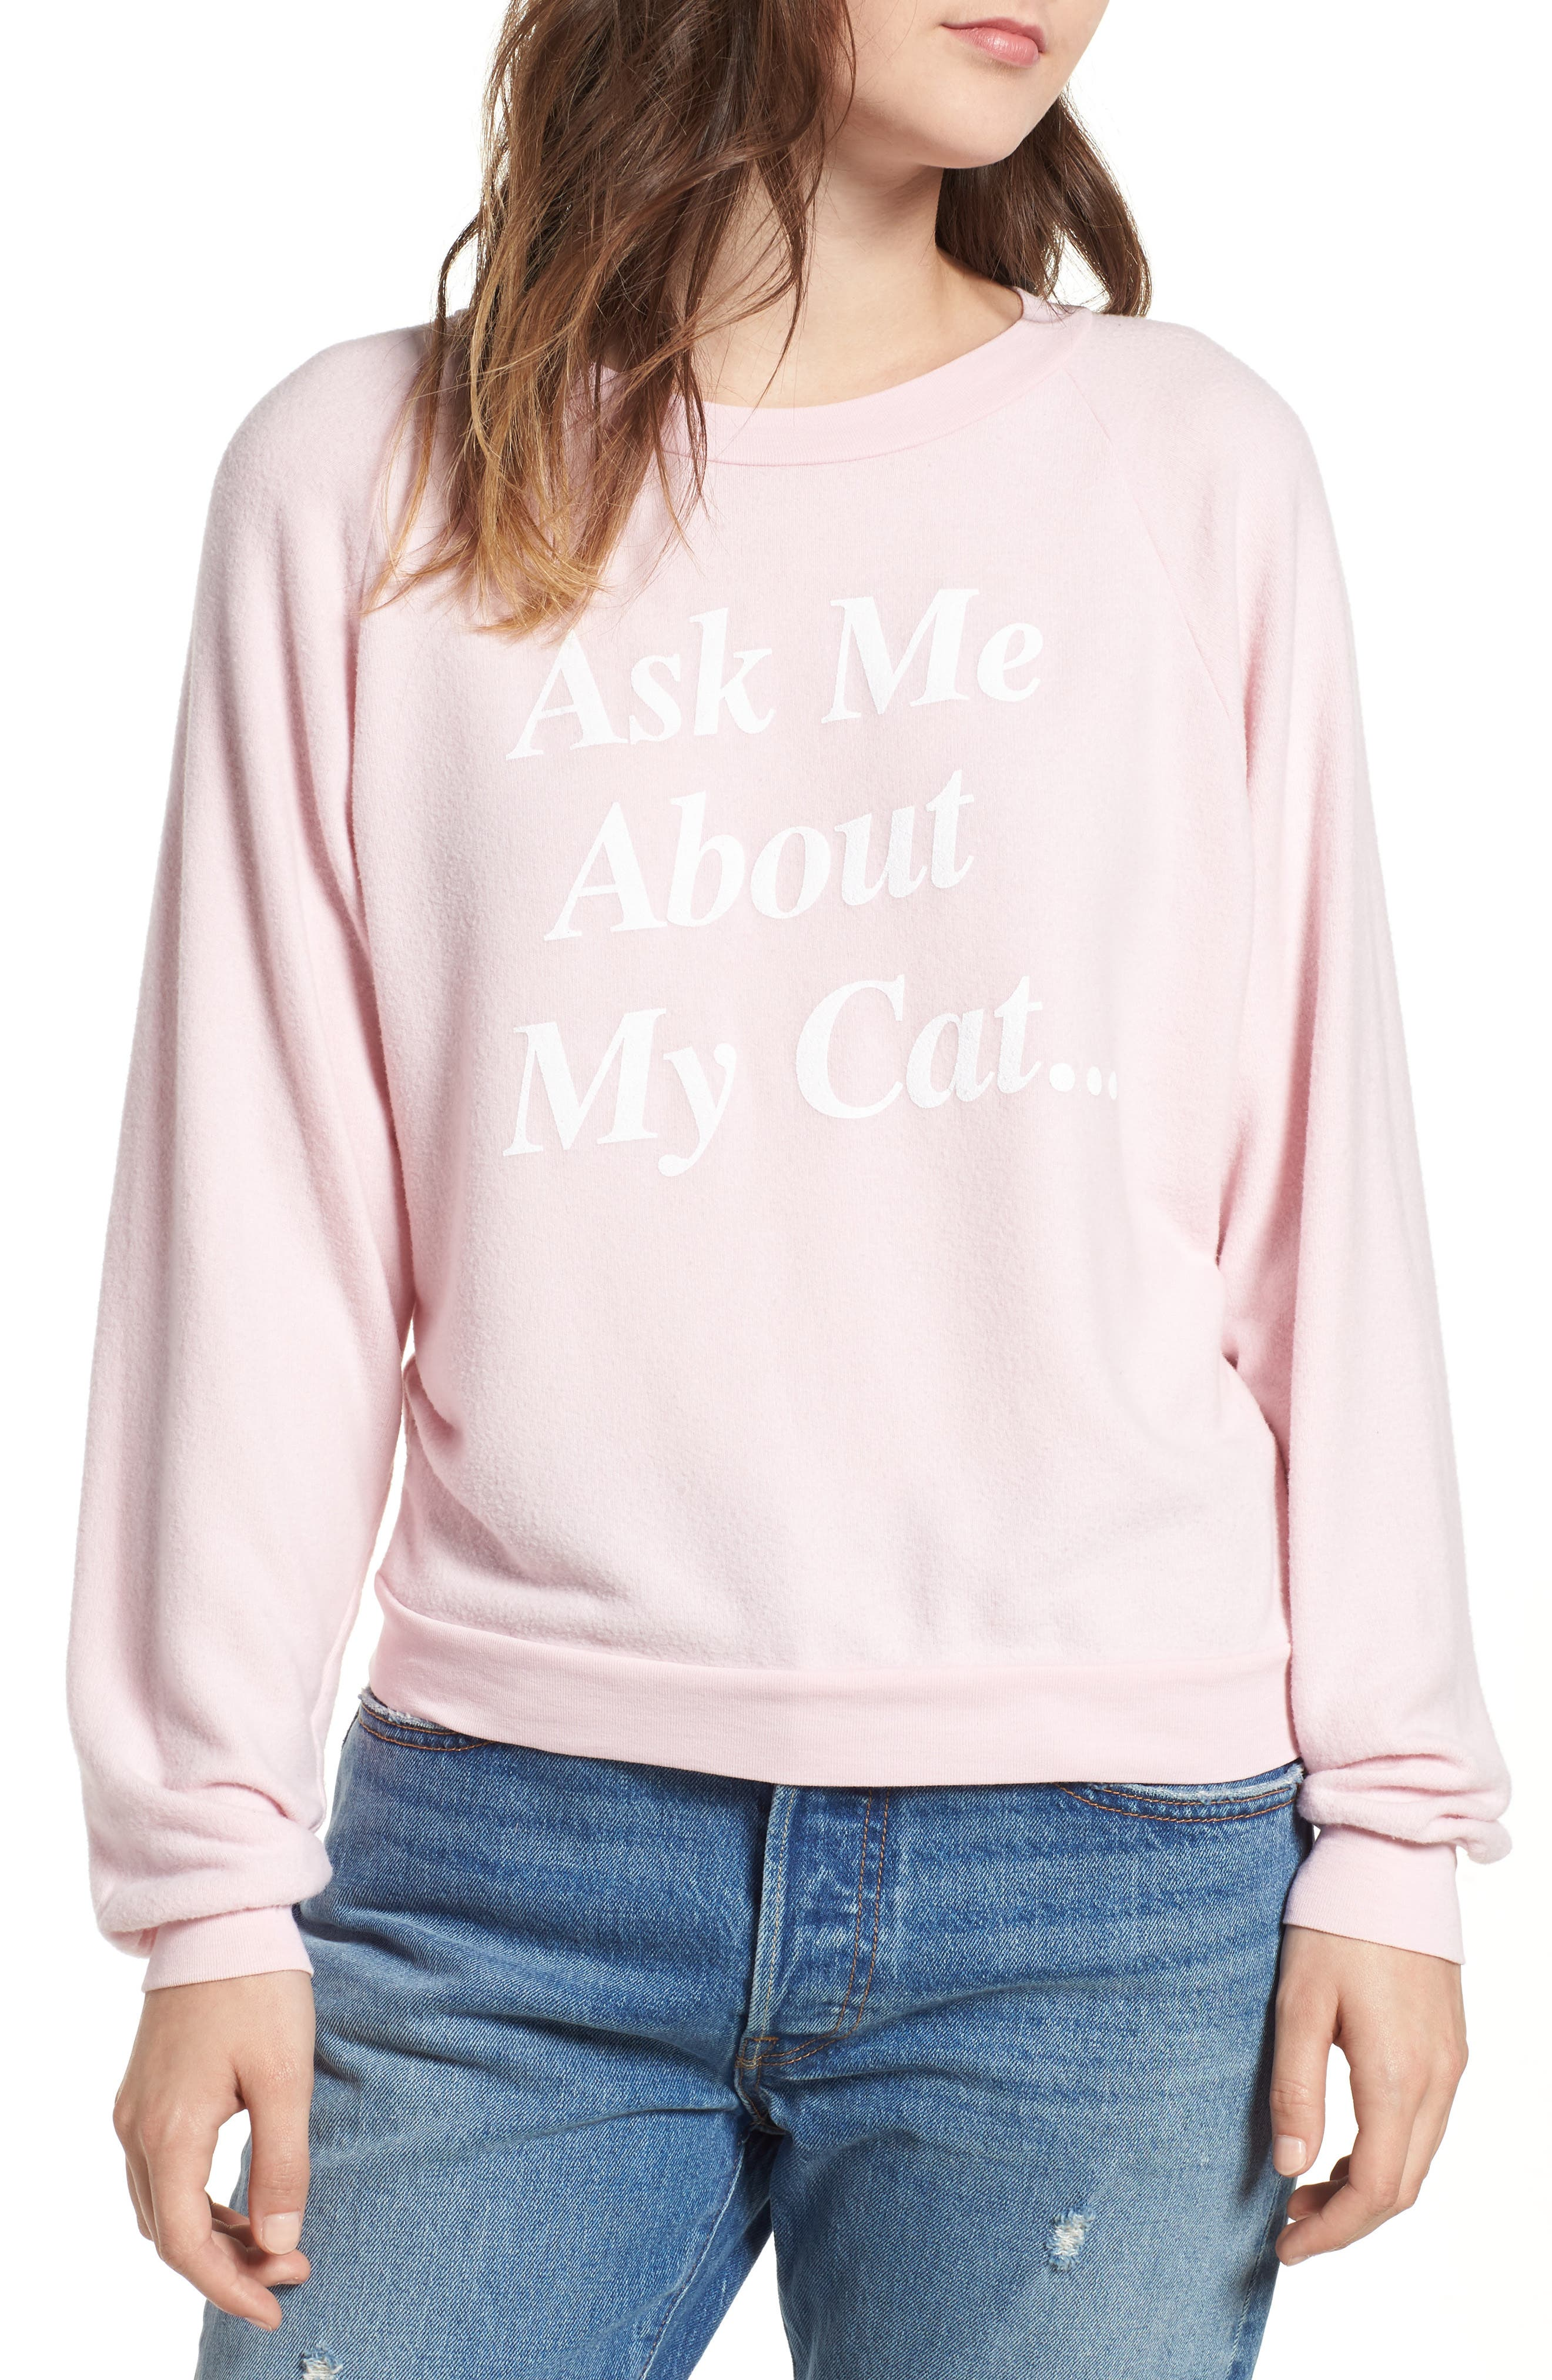 My Cat Sweatshirt,                         Main,                         color, BABY DOLL PINK